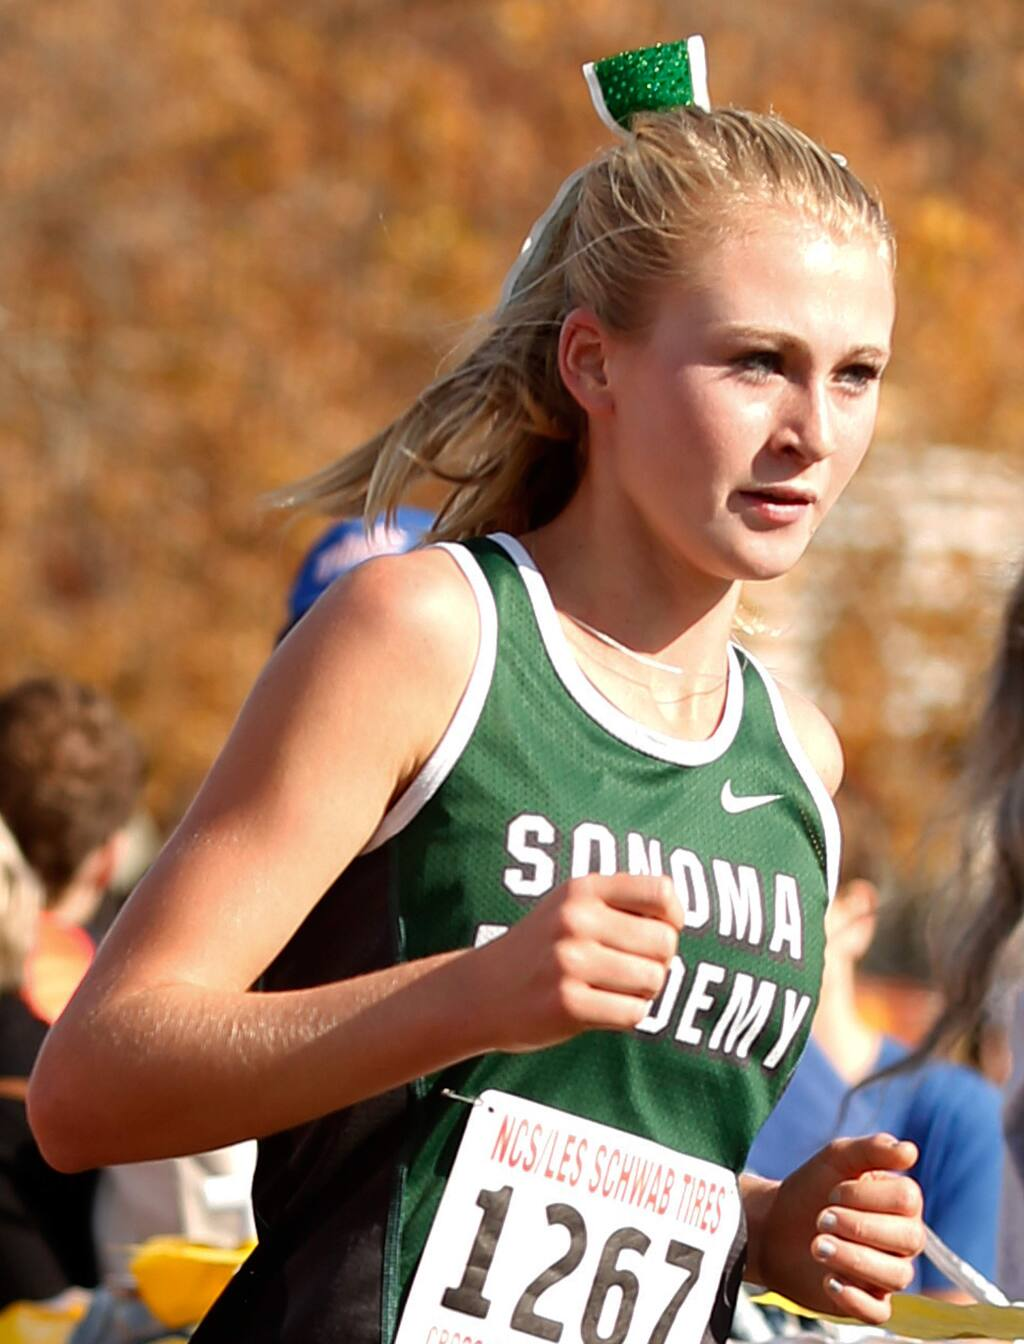 Sonoma Academy's Rylee Bowen runs in the Division V girls race during the NCS Cross Country championship in Hayward, California on Saturday, November 21, 2015. (Alvin Jornada / The Press Democrat)